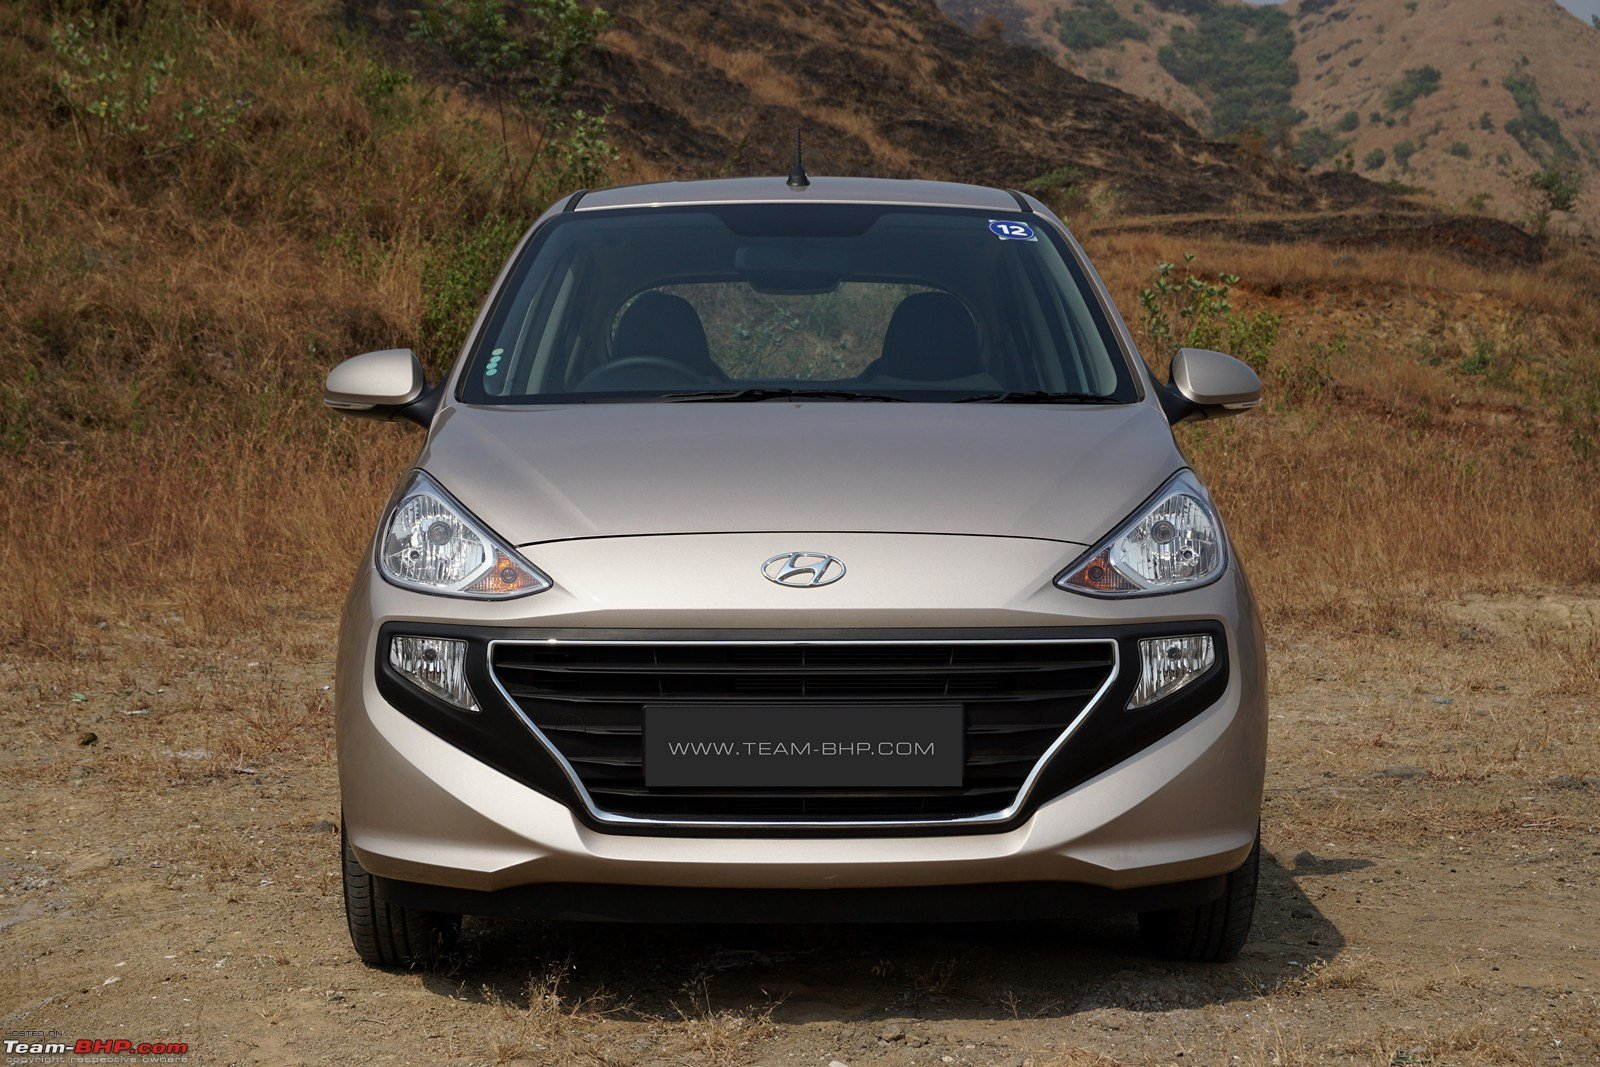 Latest Hyundai Santro Official Review Team Bhp Free Download